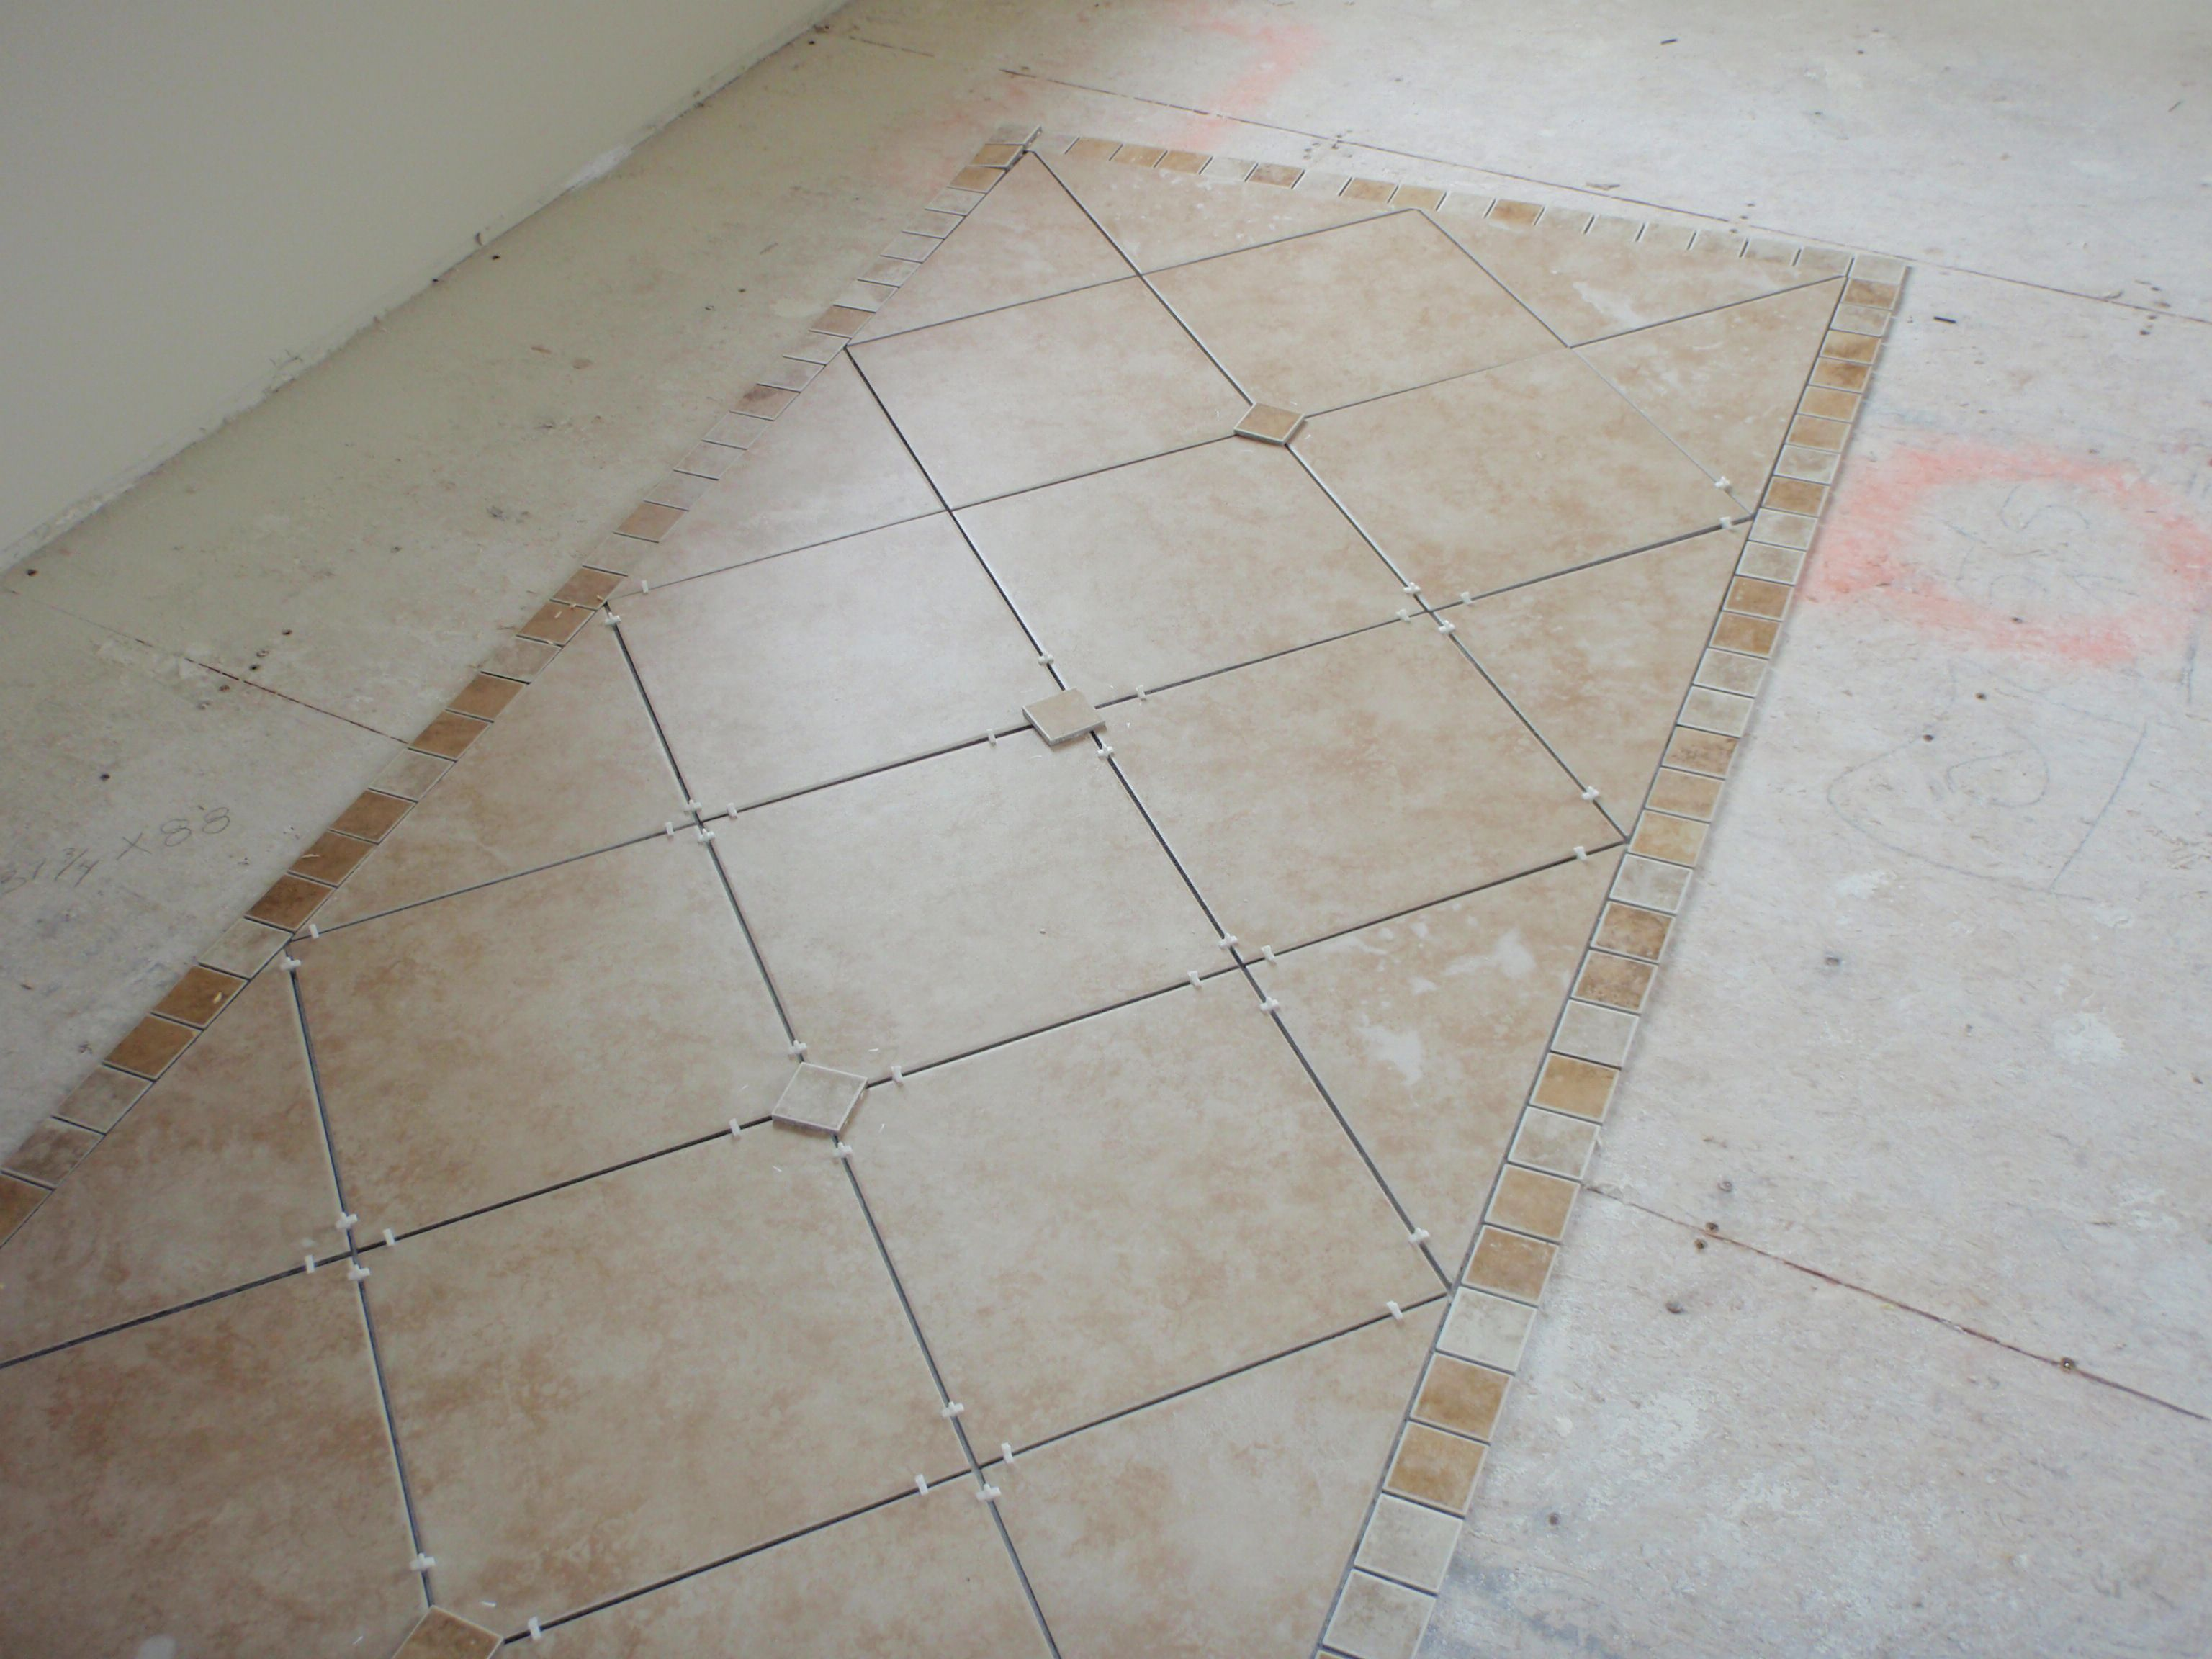 Tile rug patterns roselawnlutheran 17 best images about pisos on pinterest tile flooring simple greek inspired marble tile rug dailygadgetfo Choice Image